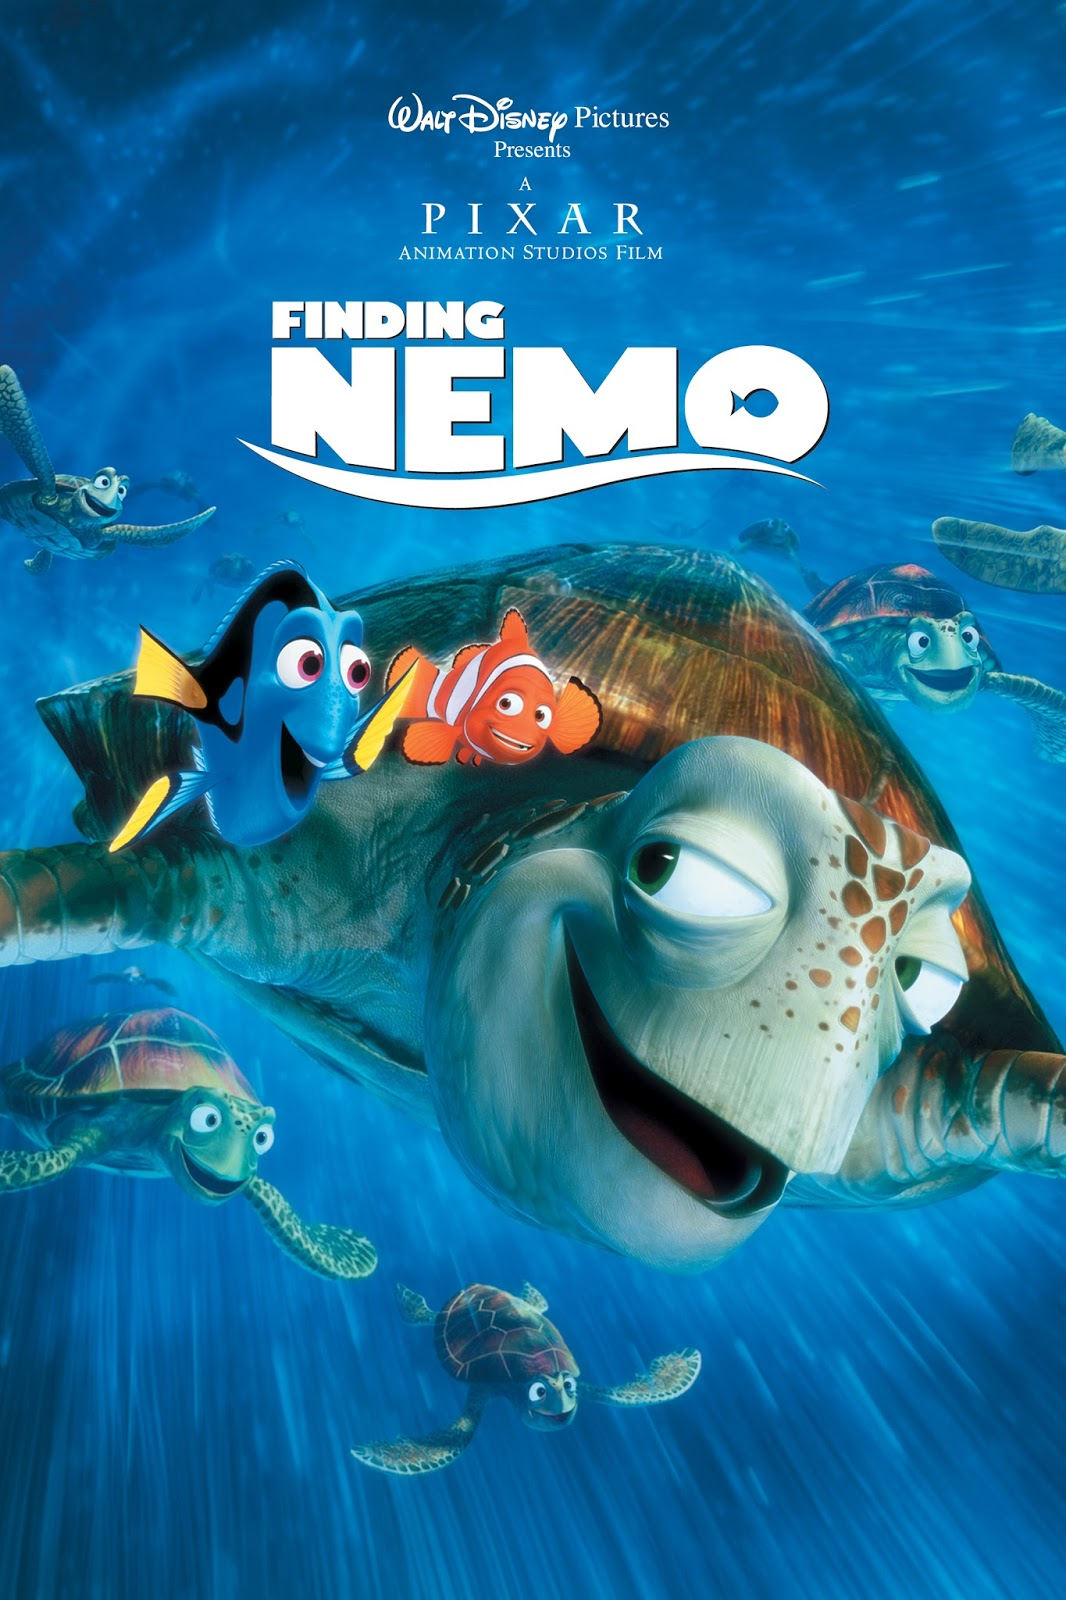 under the water adventures story of a fish nemo 17 finding.html